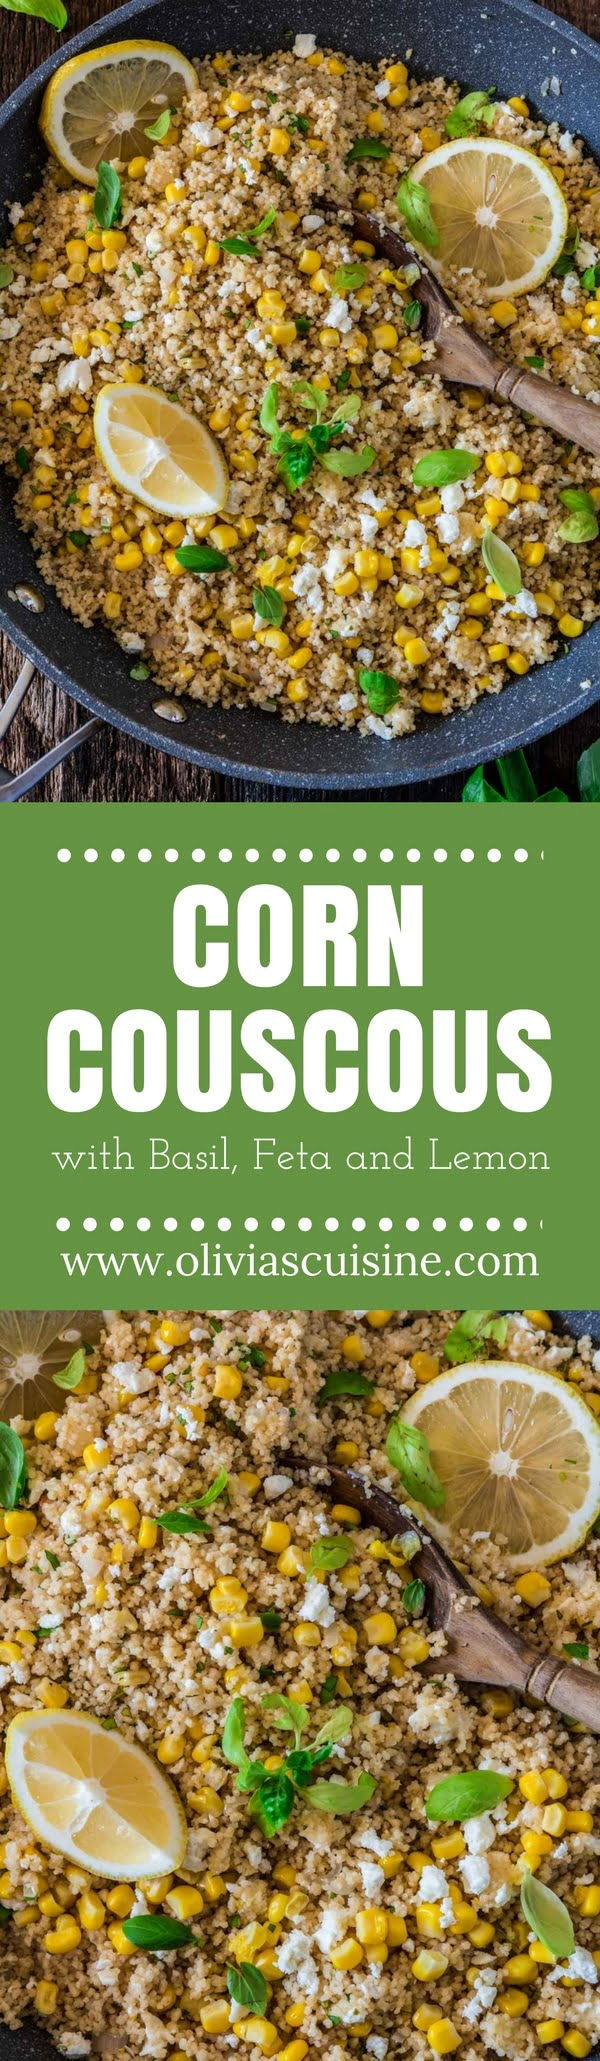 Corn Couscous with Basil, Feta and Lemon | www.oliviascuisine.com | This simple dish, packed with Mediterranean flavors, consists of only 7 main ingredients and is done in about 5 minutes. Serve it warm as a side dish, or cold as a salad. (Recipe and food photography by @oliviascuisine.)